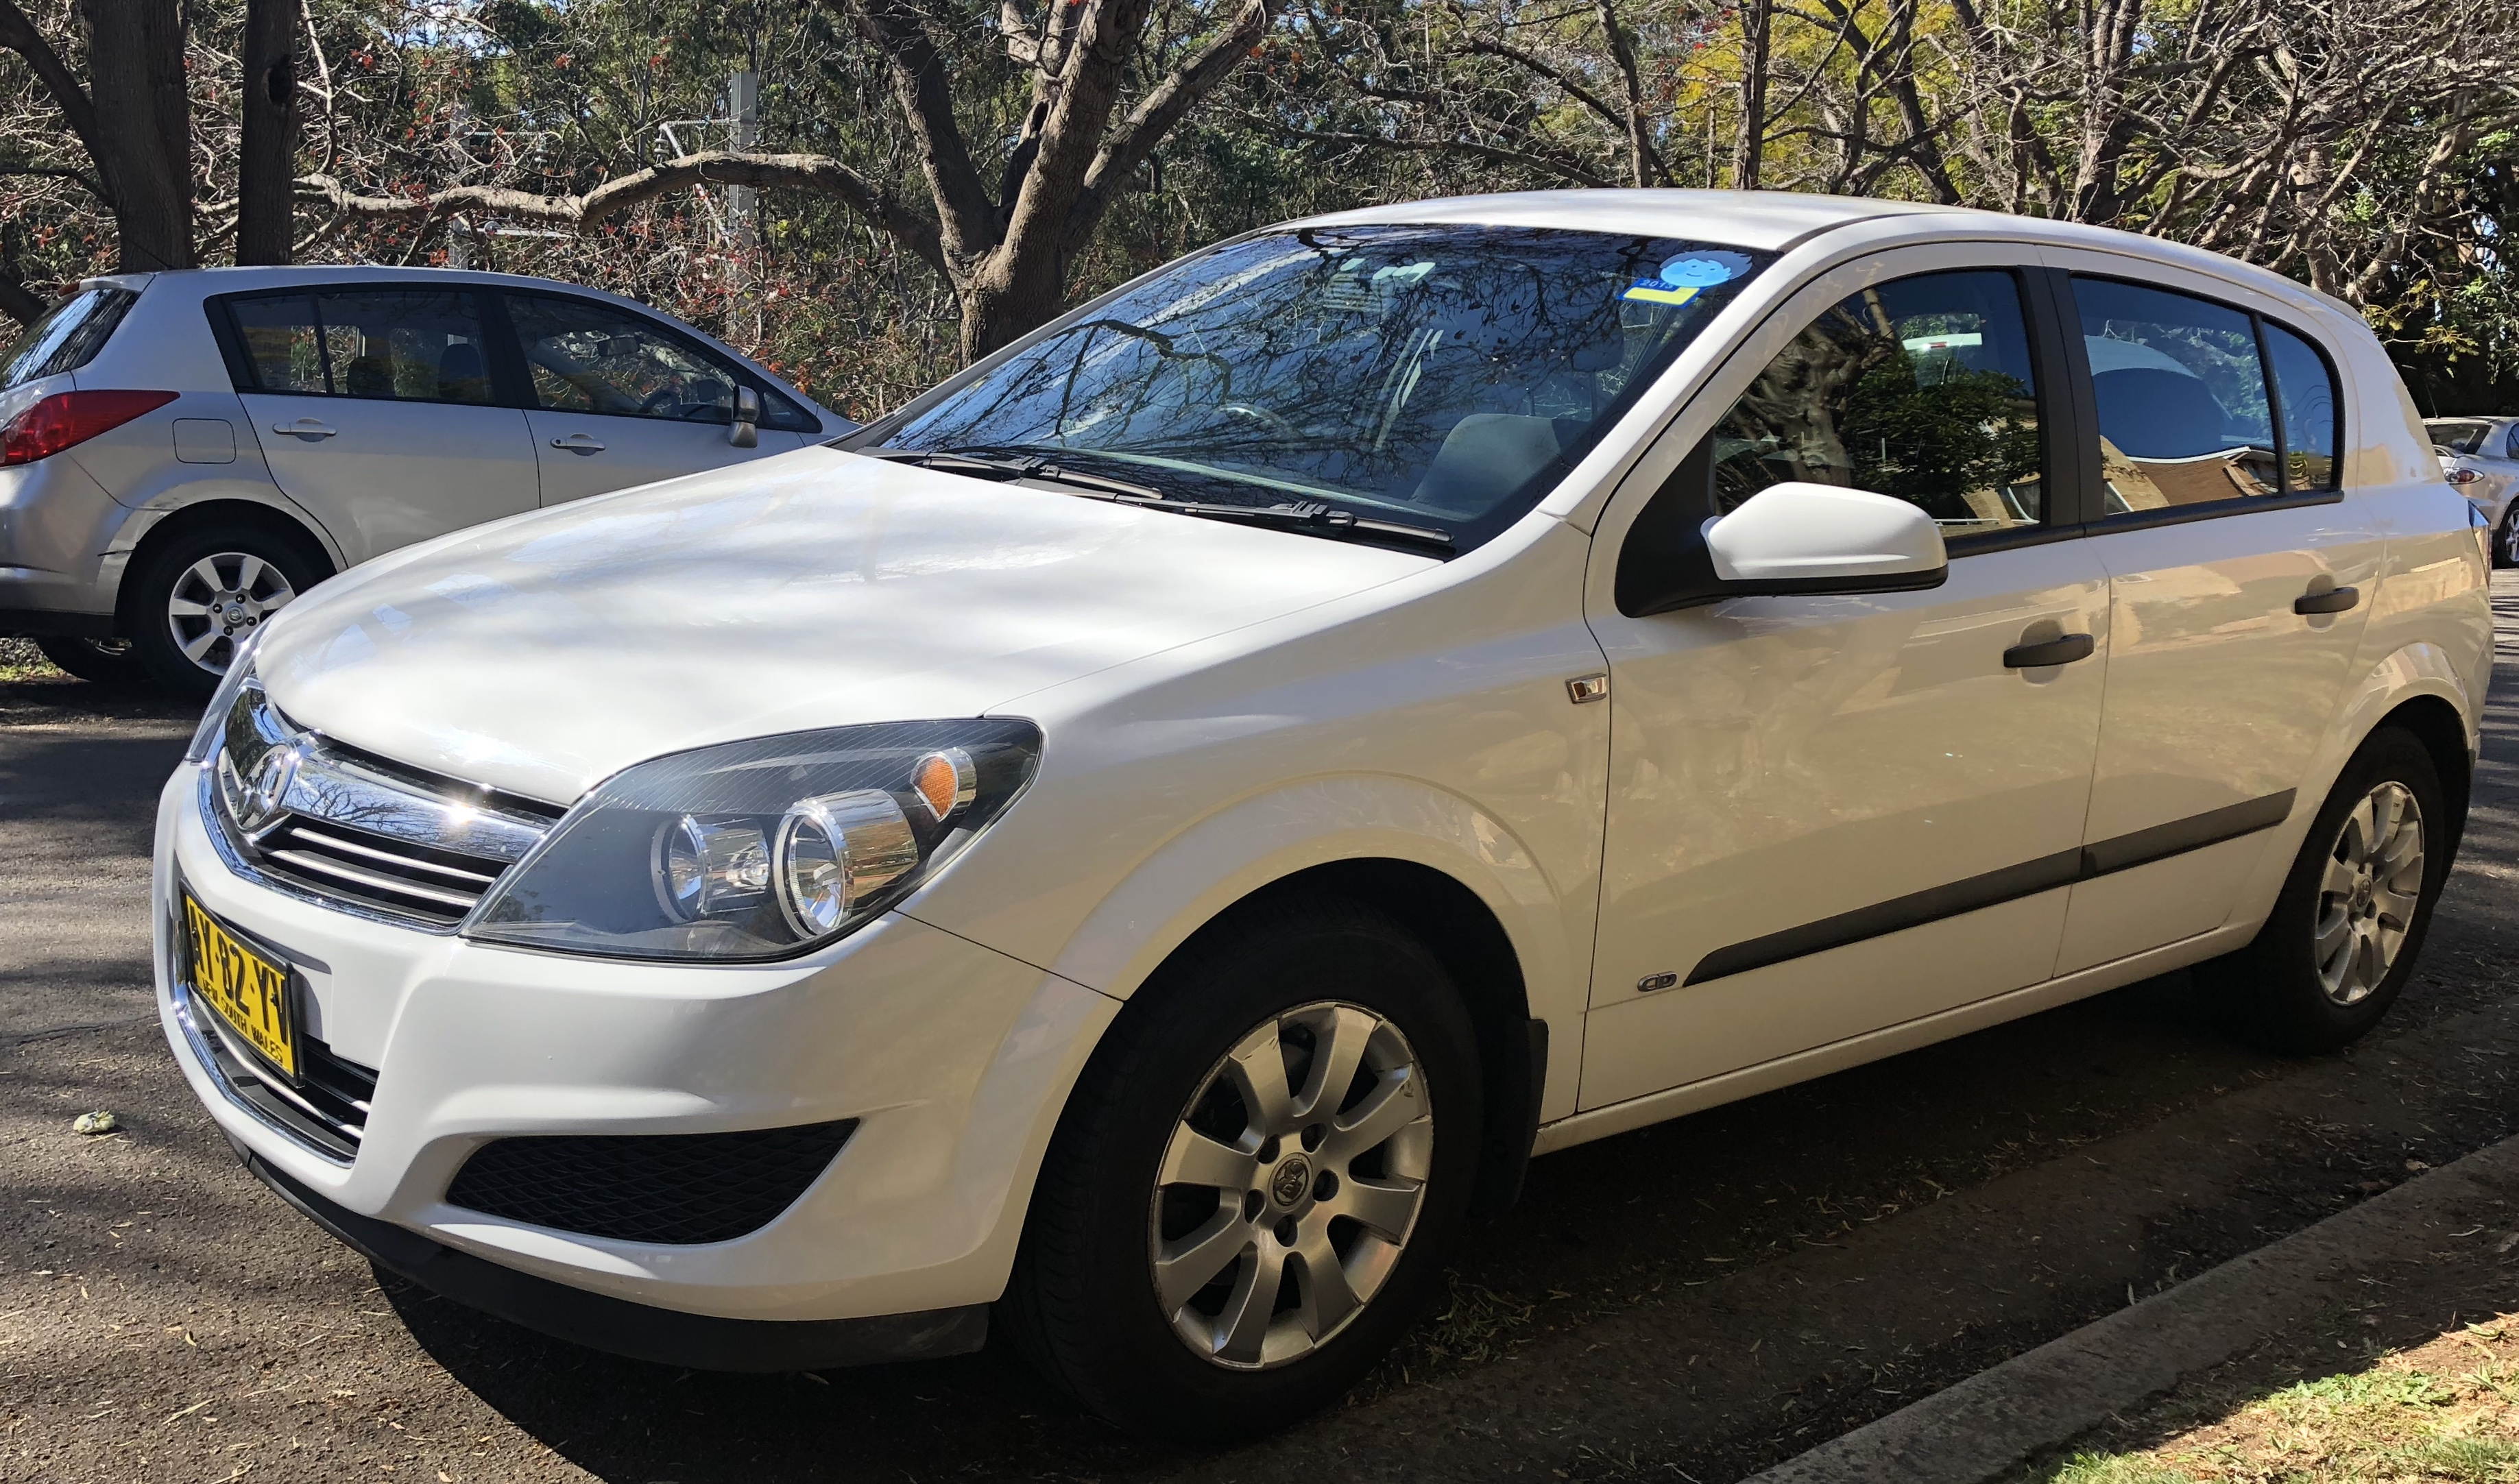 Picture of Niraj's 2008 Holden Astra hatchback